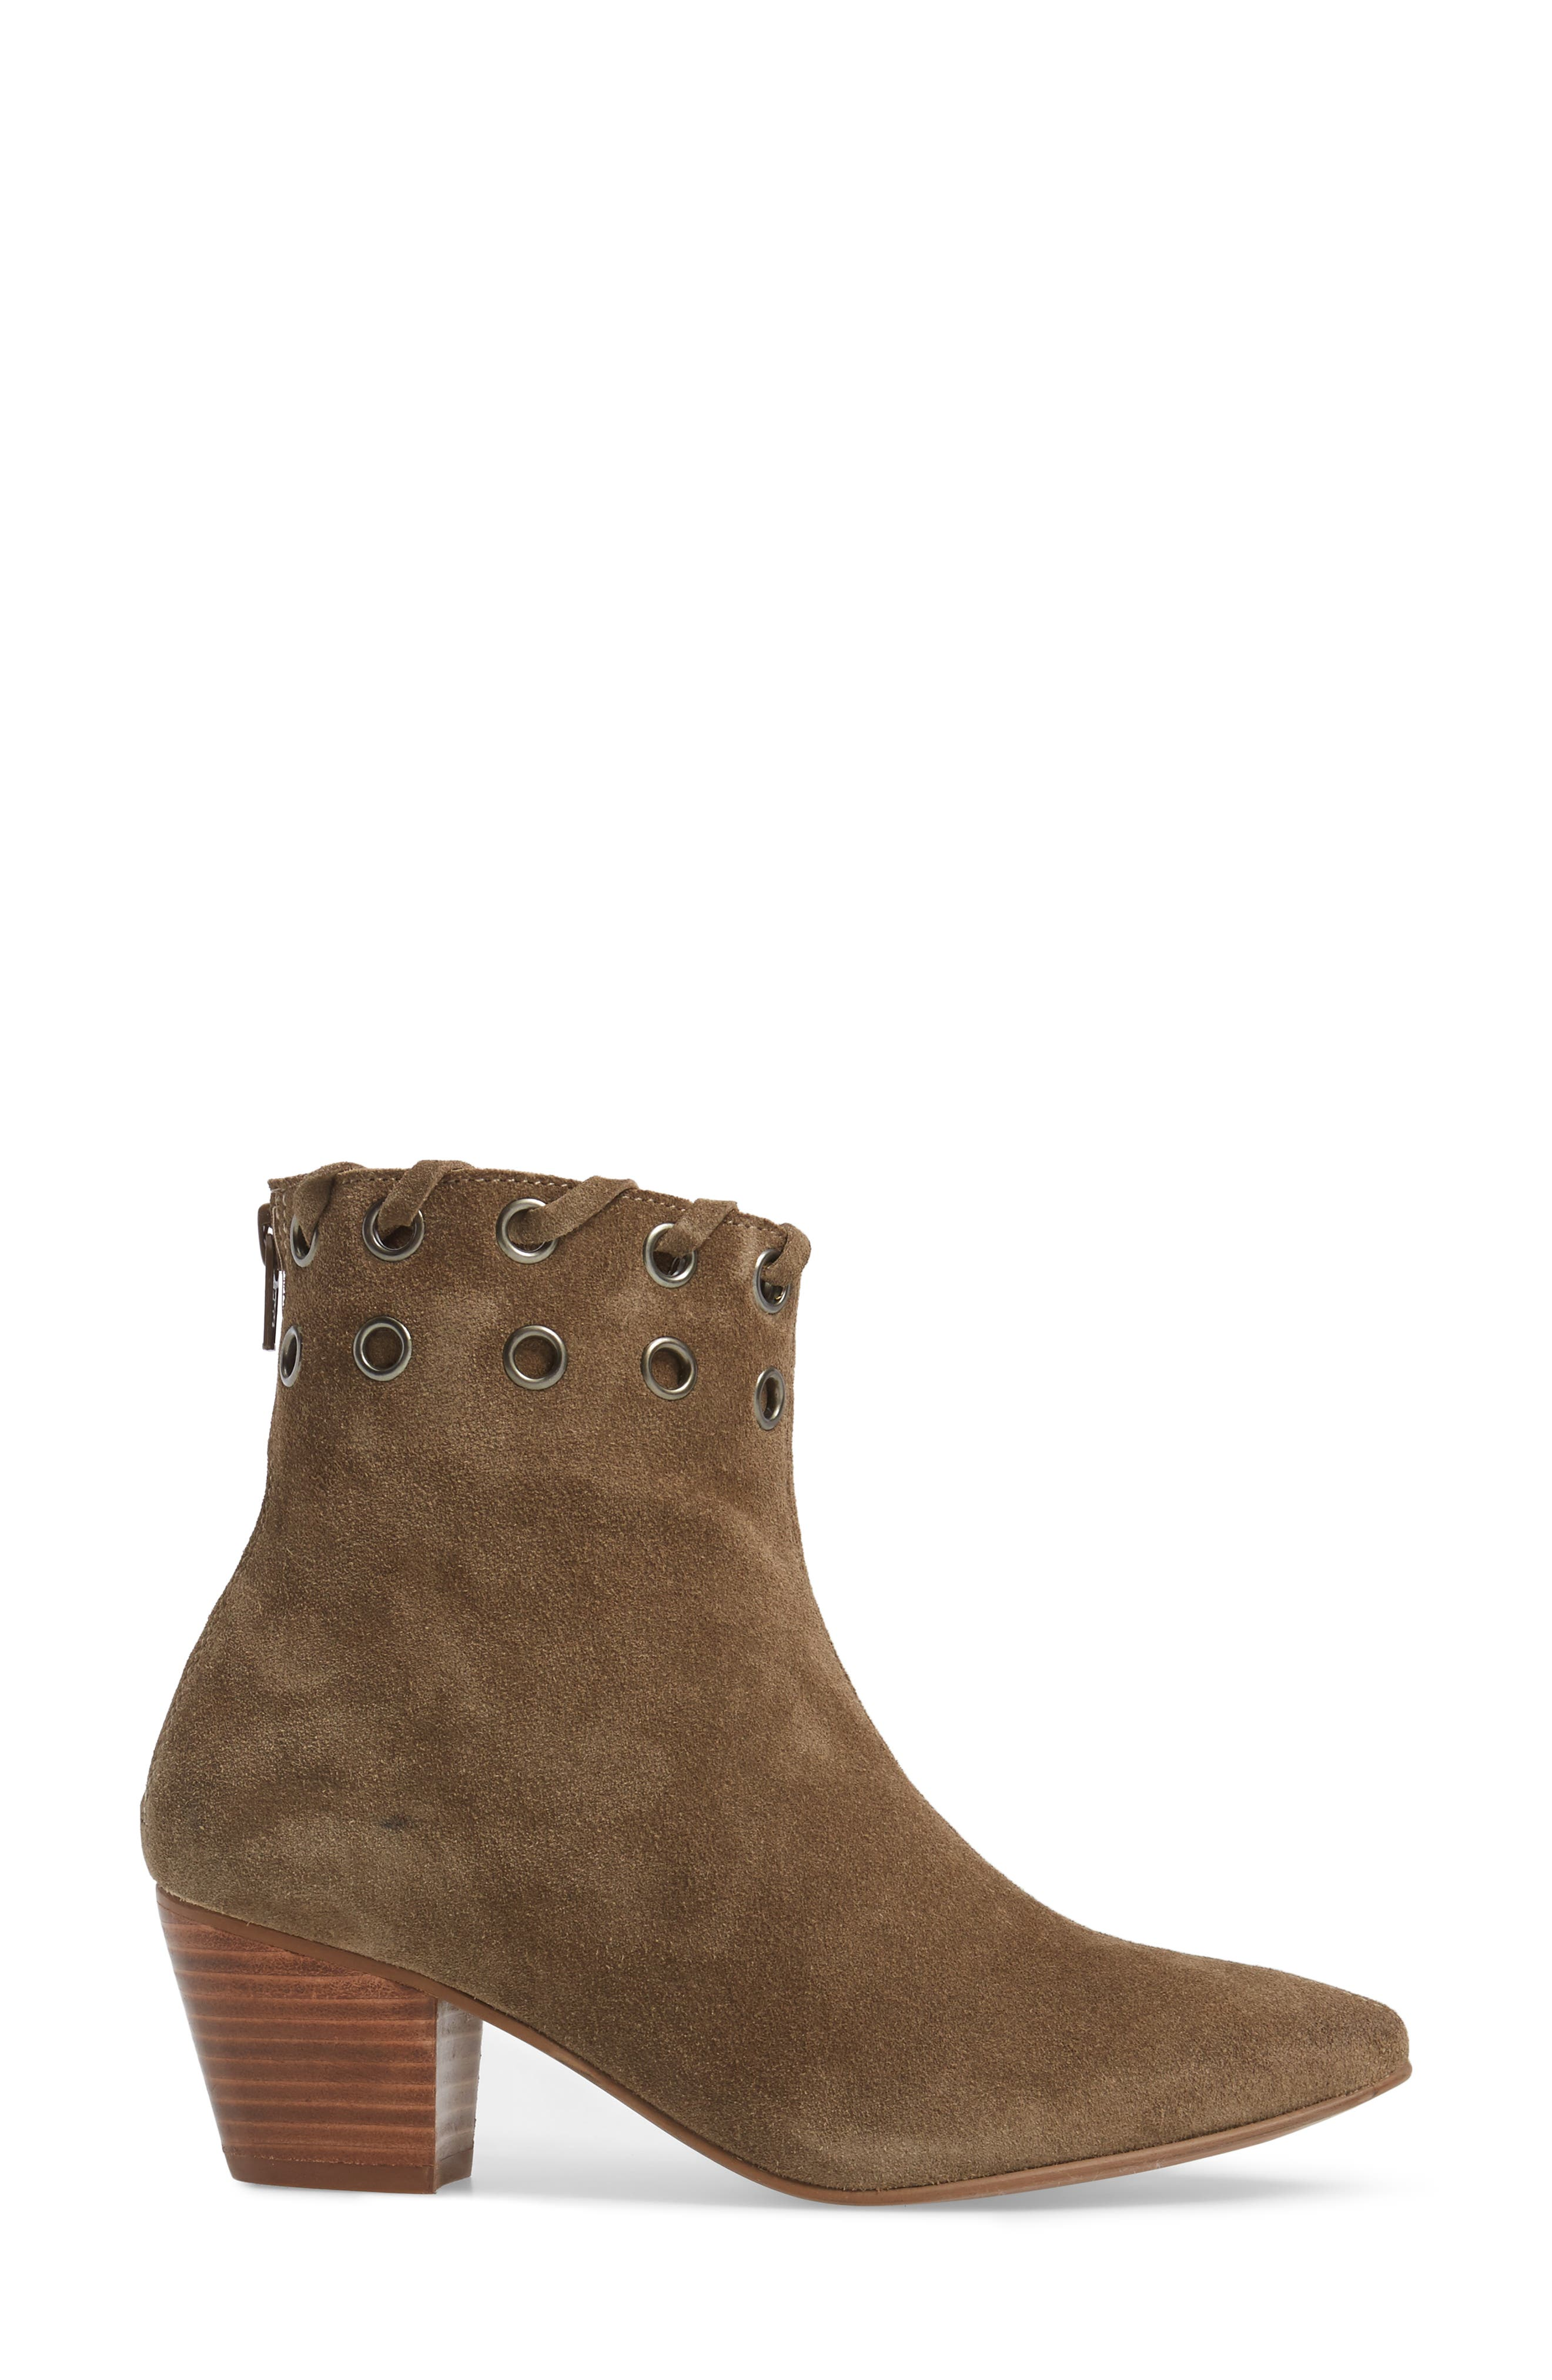 Wildcat Bootie,                             Alternate thumbnail 3, color,                             Taupe Suede